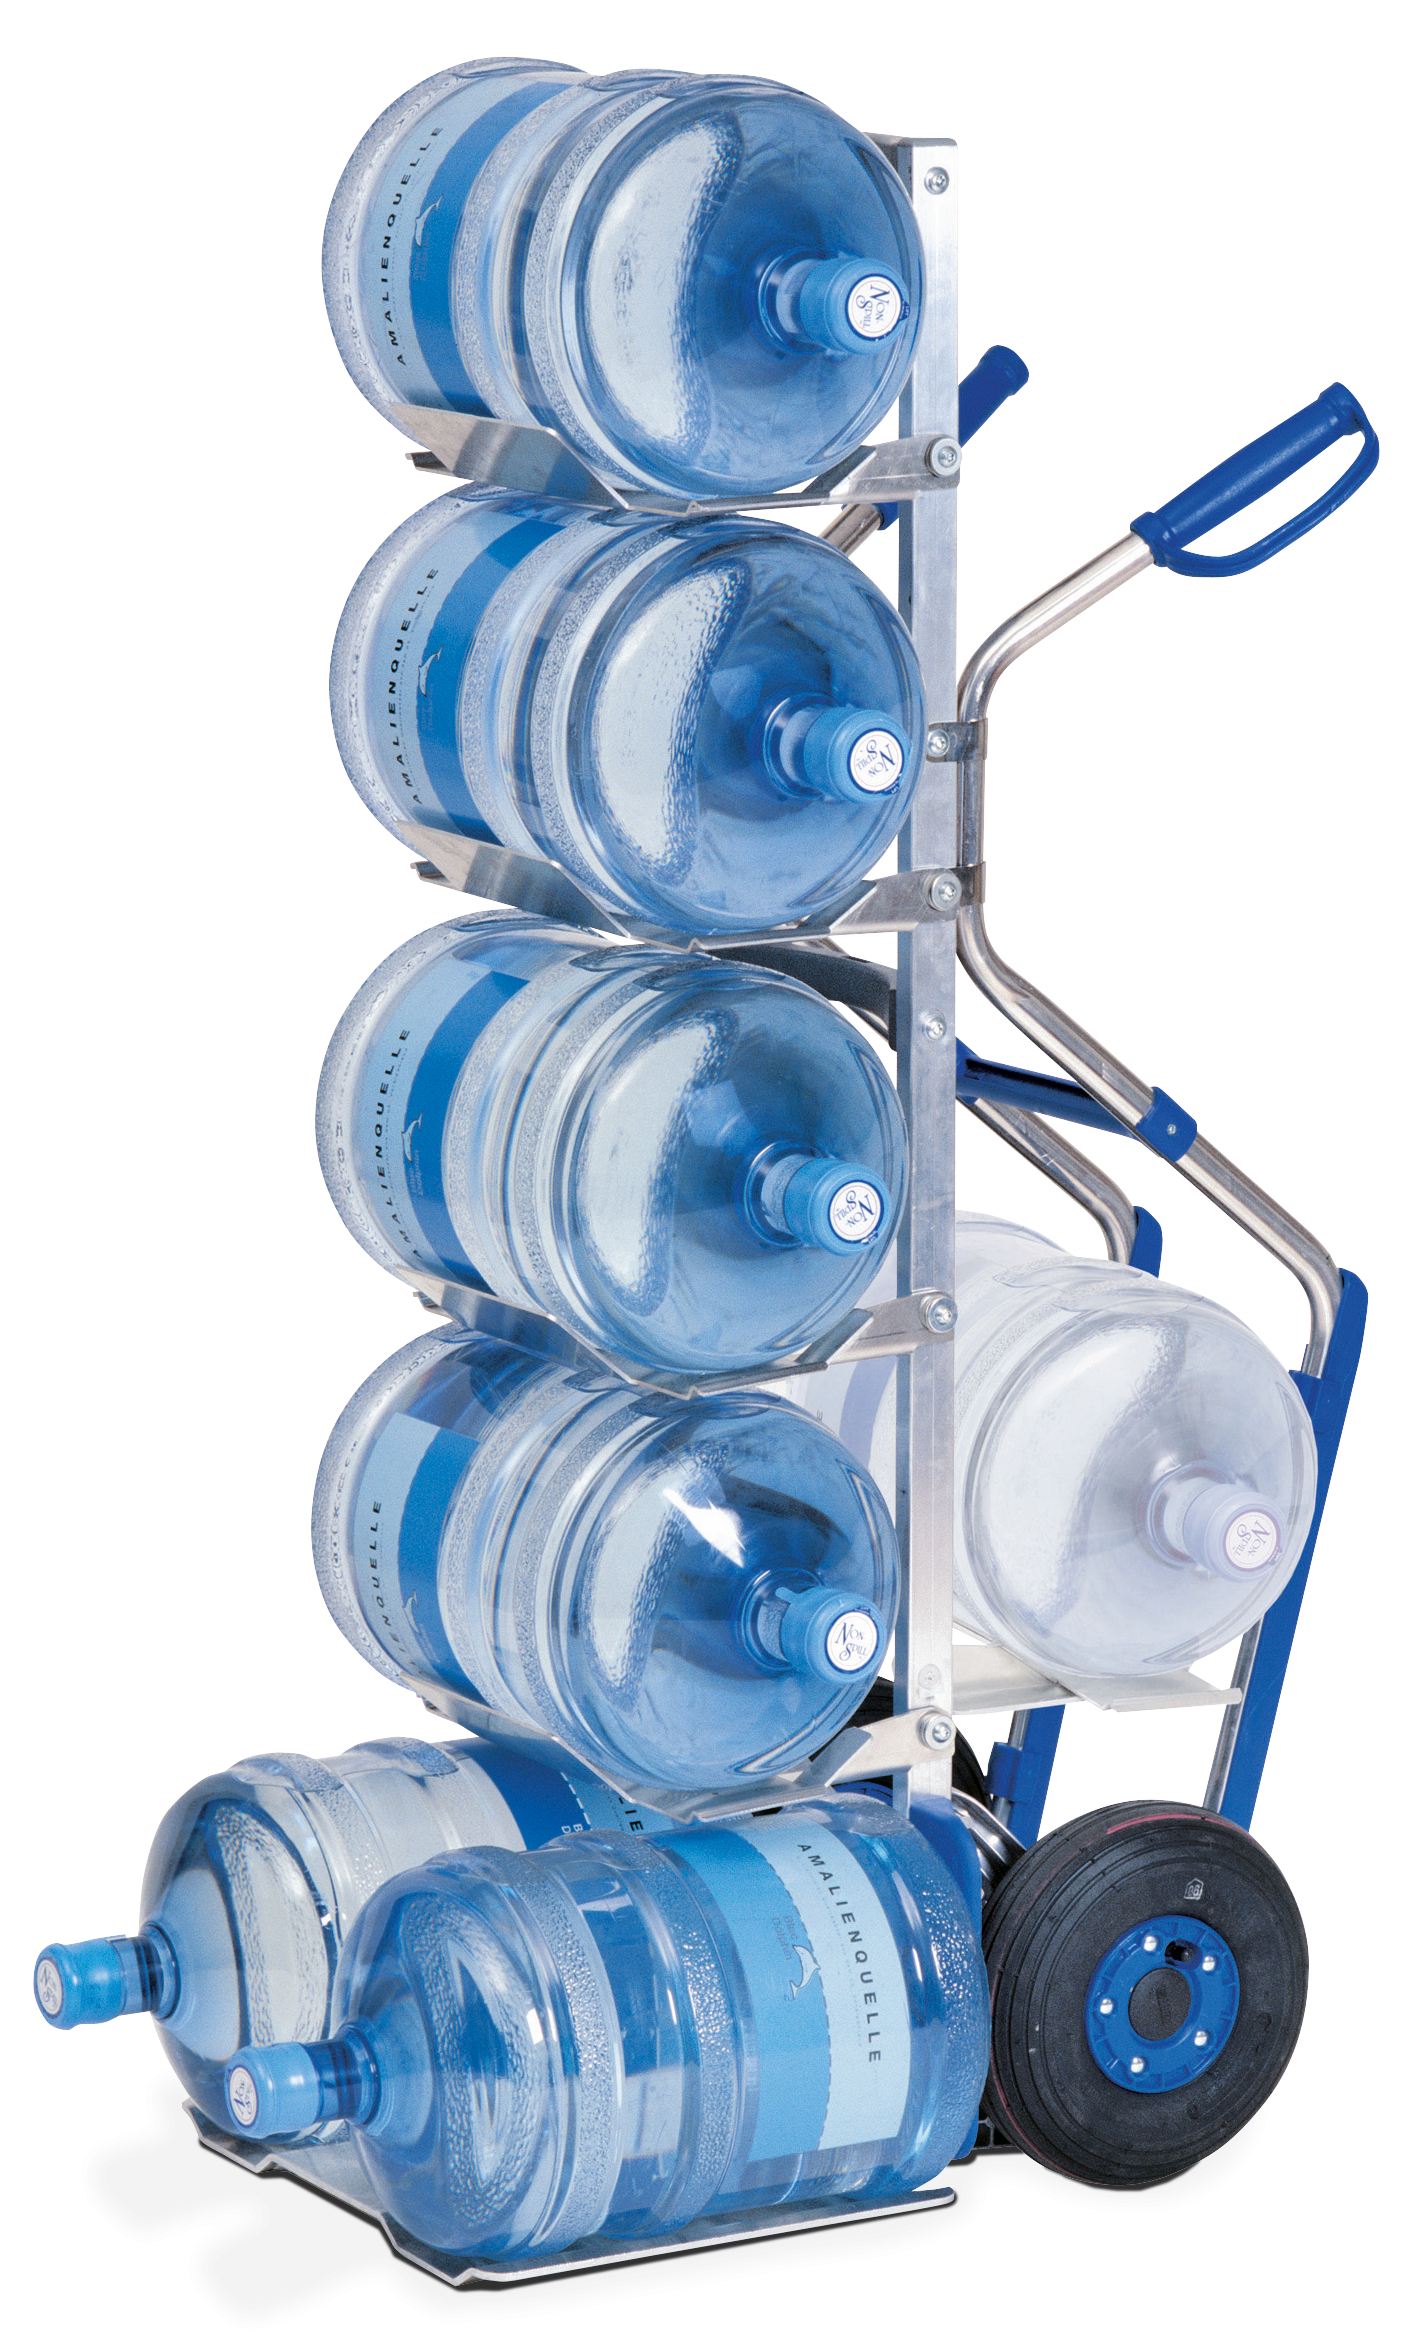 MODULKAR Water bottle truck with pistol grips and stair gliders for up to 7 water bottles